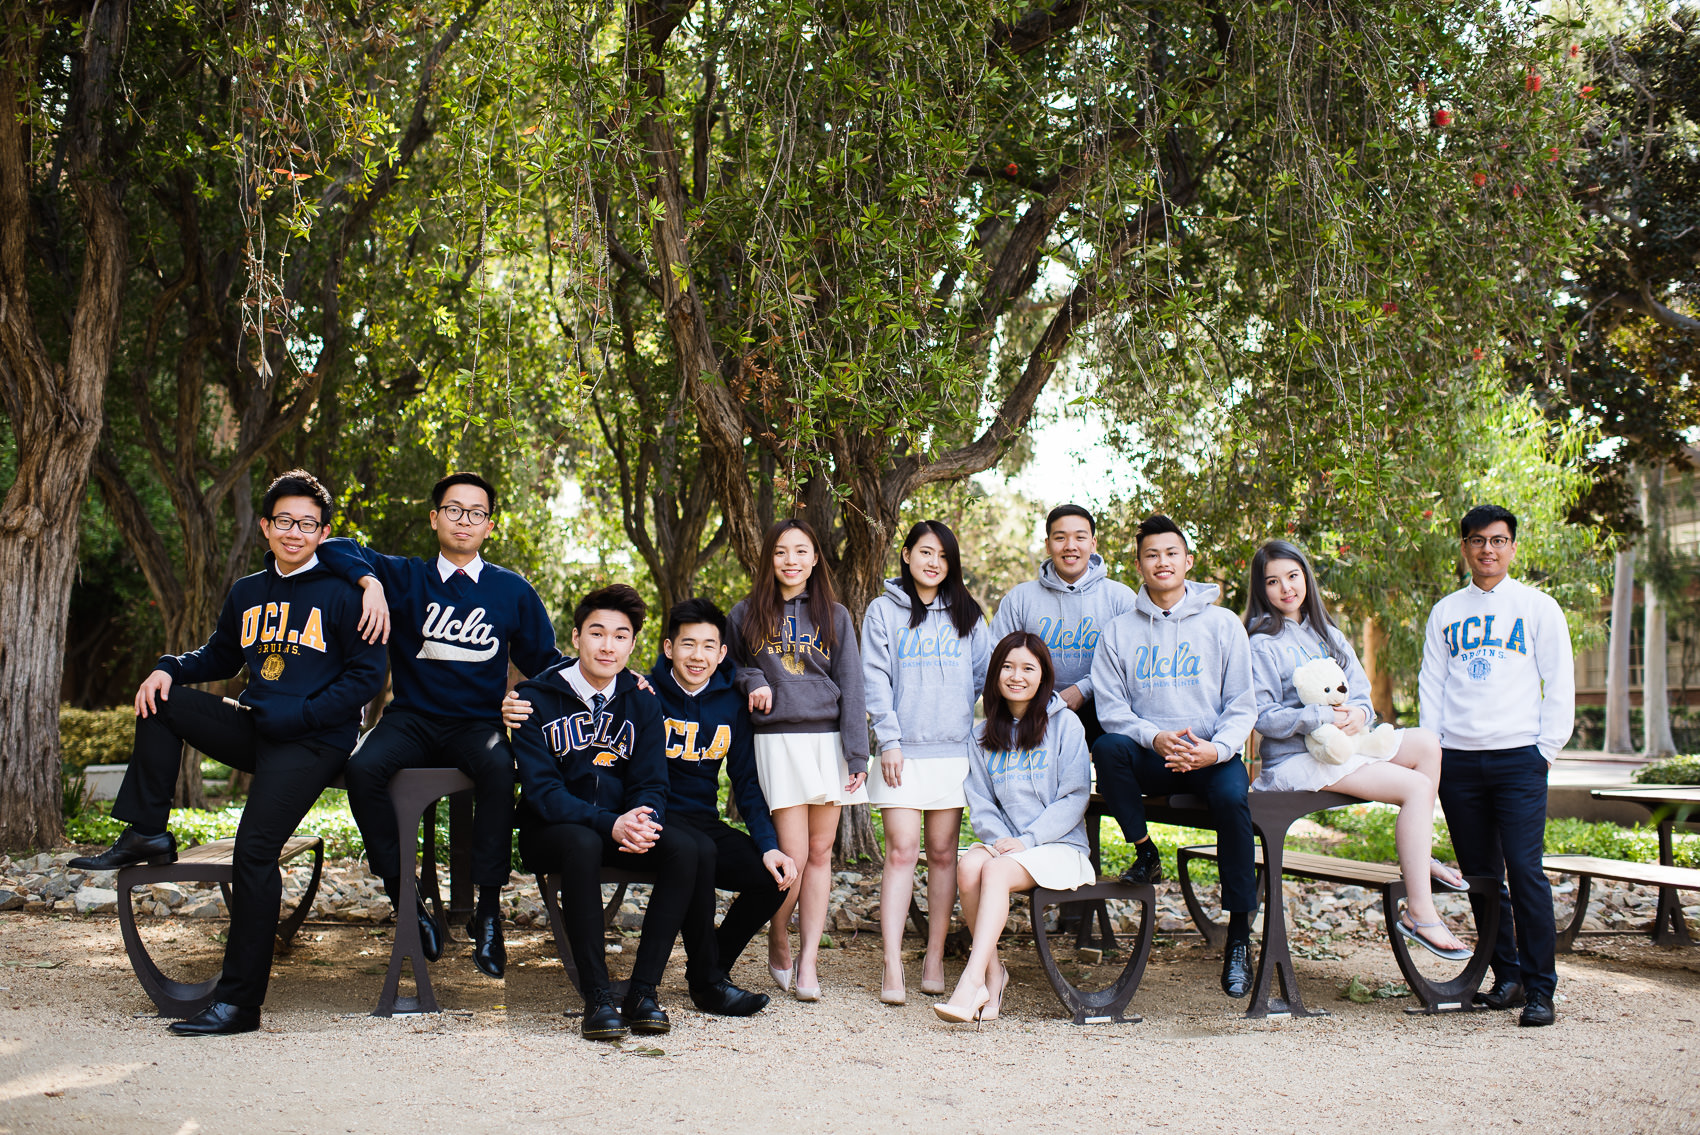 classic group photo wearing collegiate bearwear attire at ucla